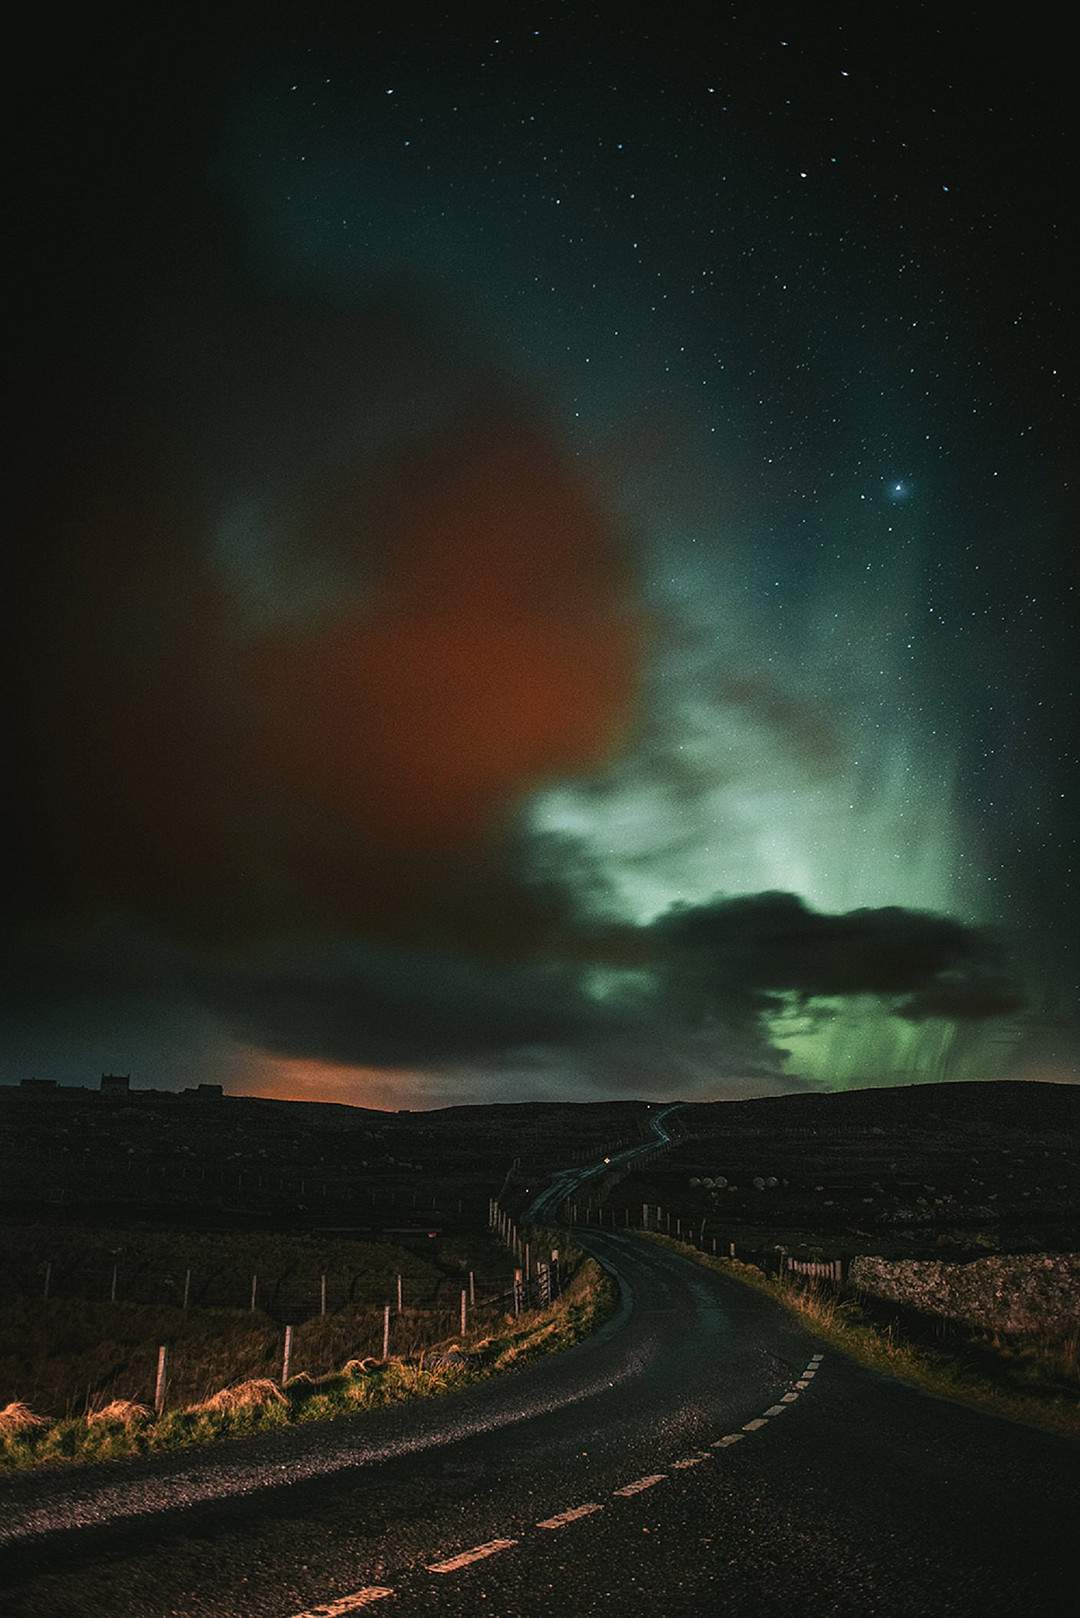 Starry skies in Scotland